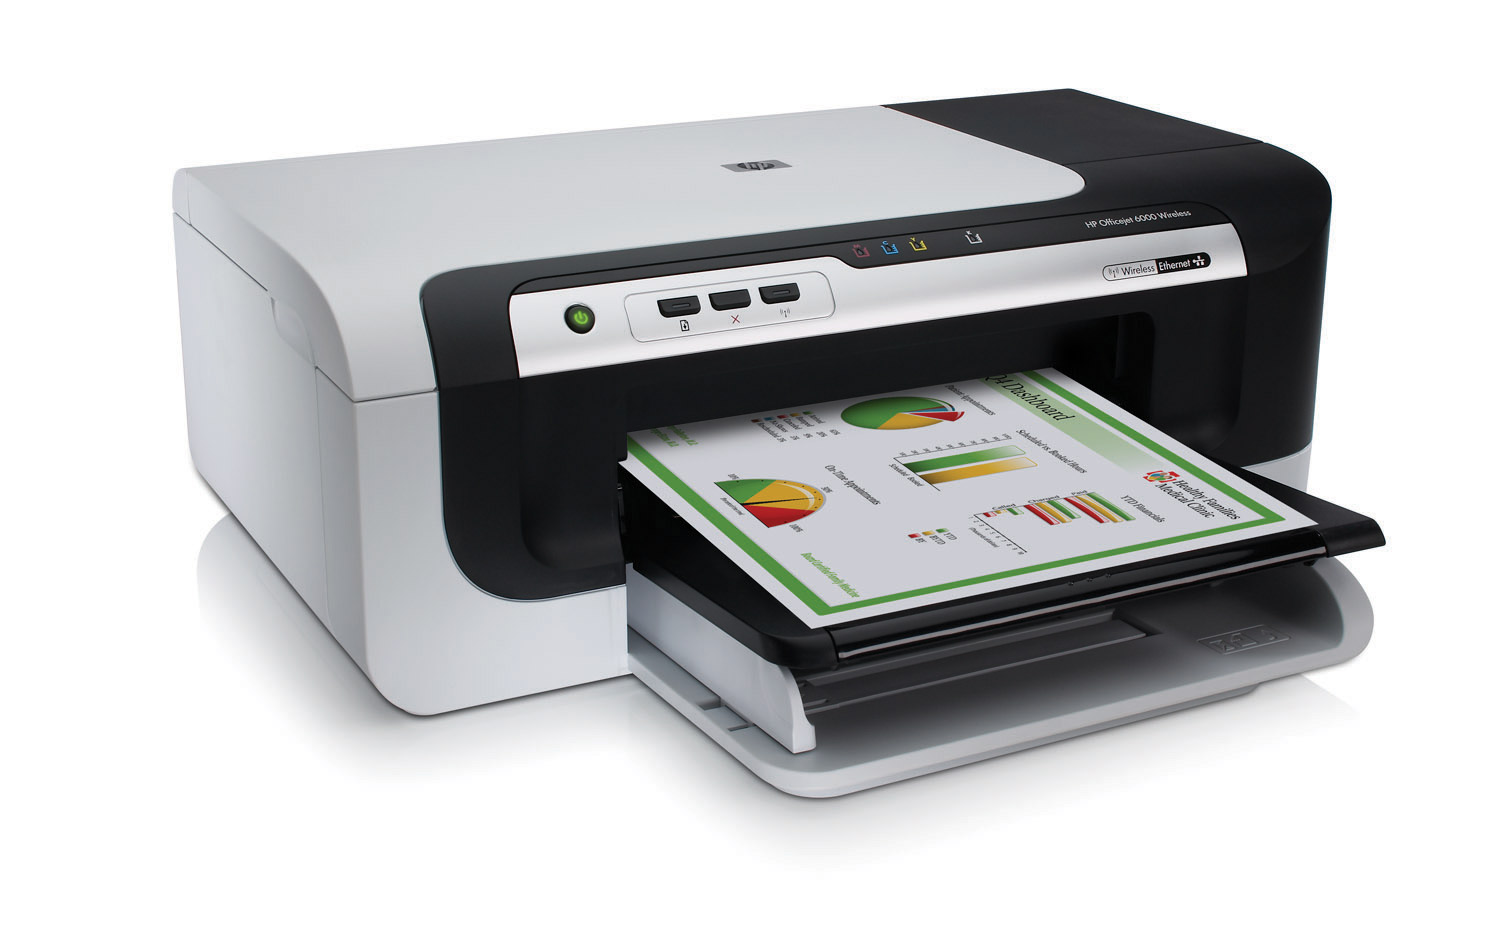 Mnl-5047] hp officejet j4550 all in one printer manual | 2019.